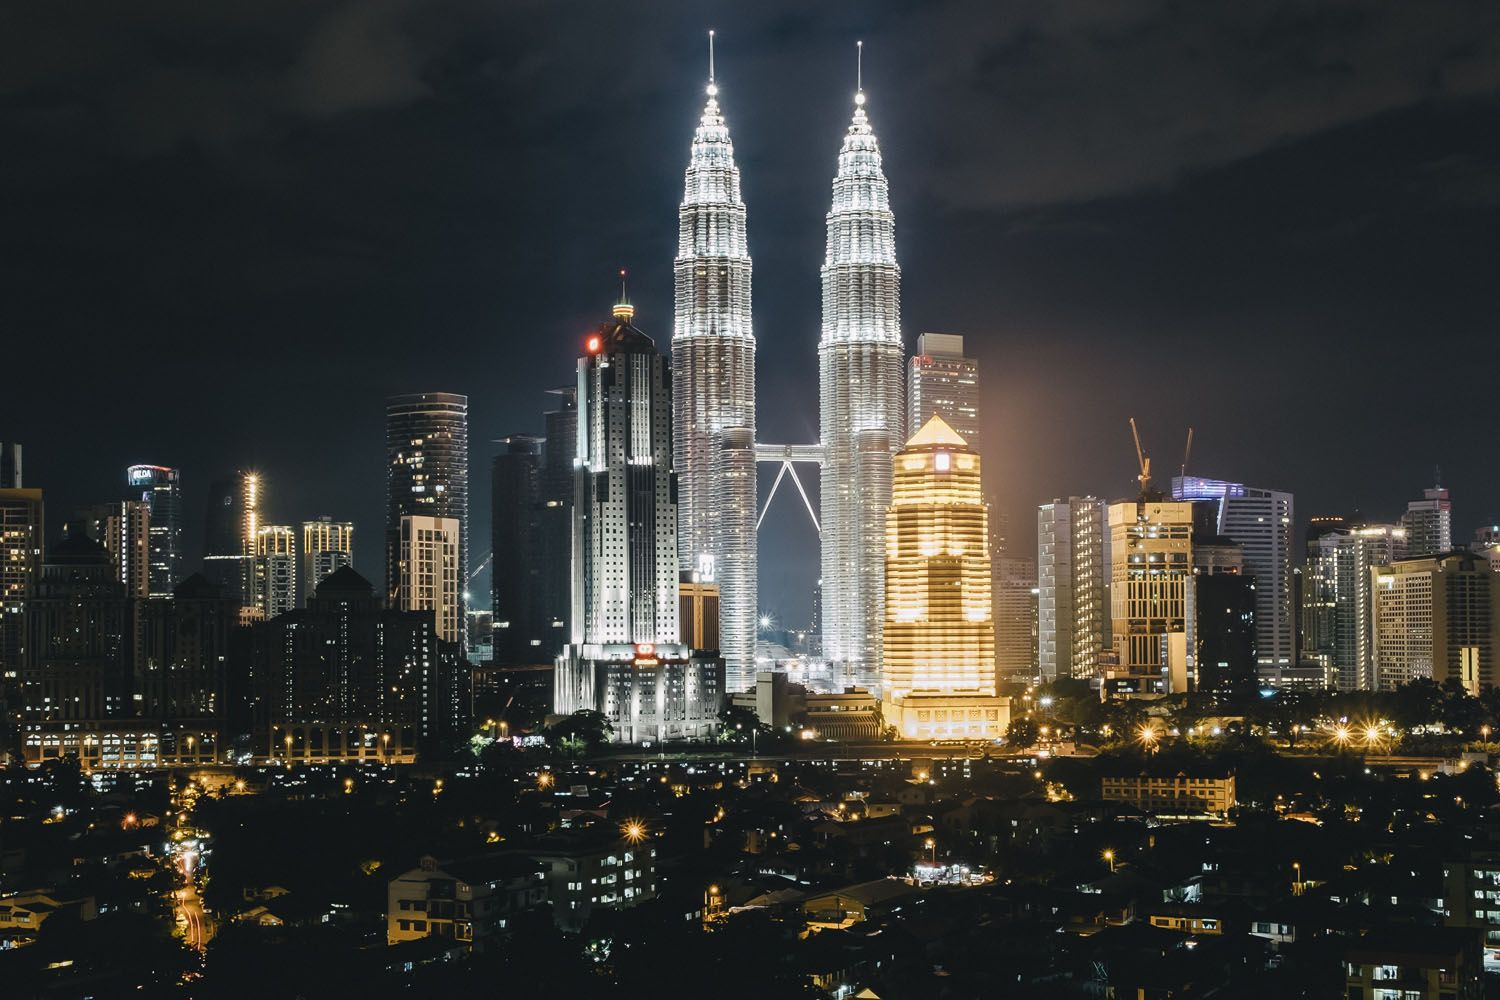 Unfavorable Outlook for Kuala Lumpur Hotel Industry